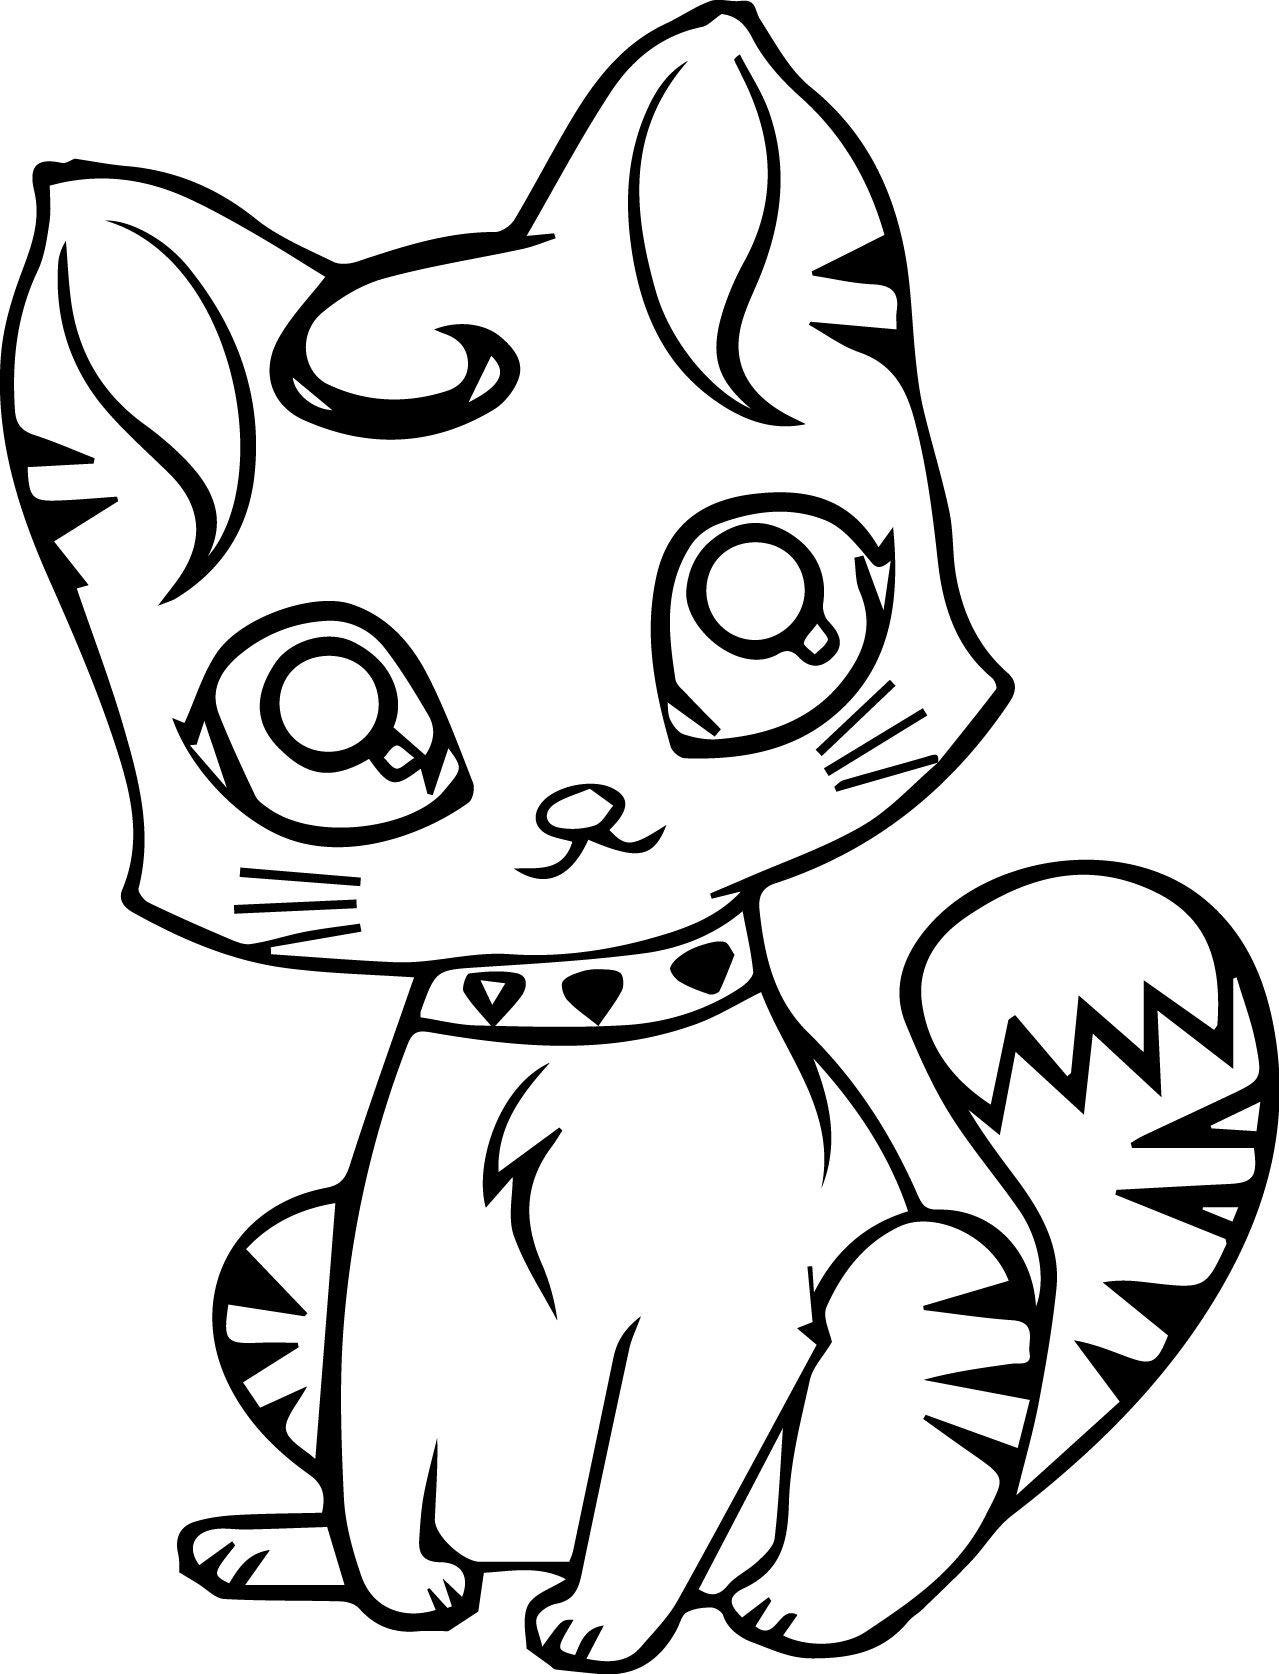 Some Helpful Solid Tips For Cat Lovers More Details Can Be Found By Clicking On The Image Kitty Coloring Hello Kitty Colouring Pages Cat Coloring Page